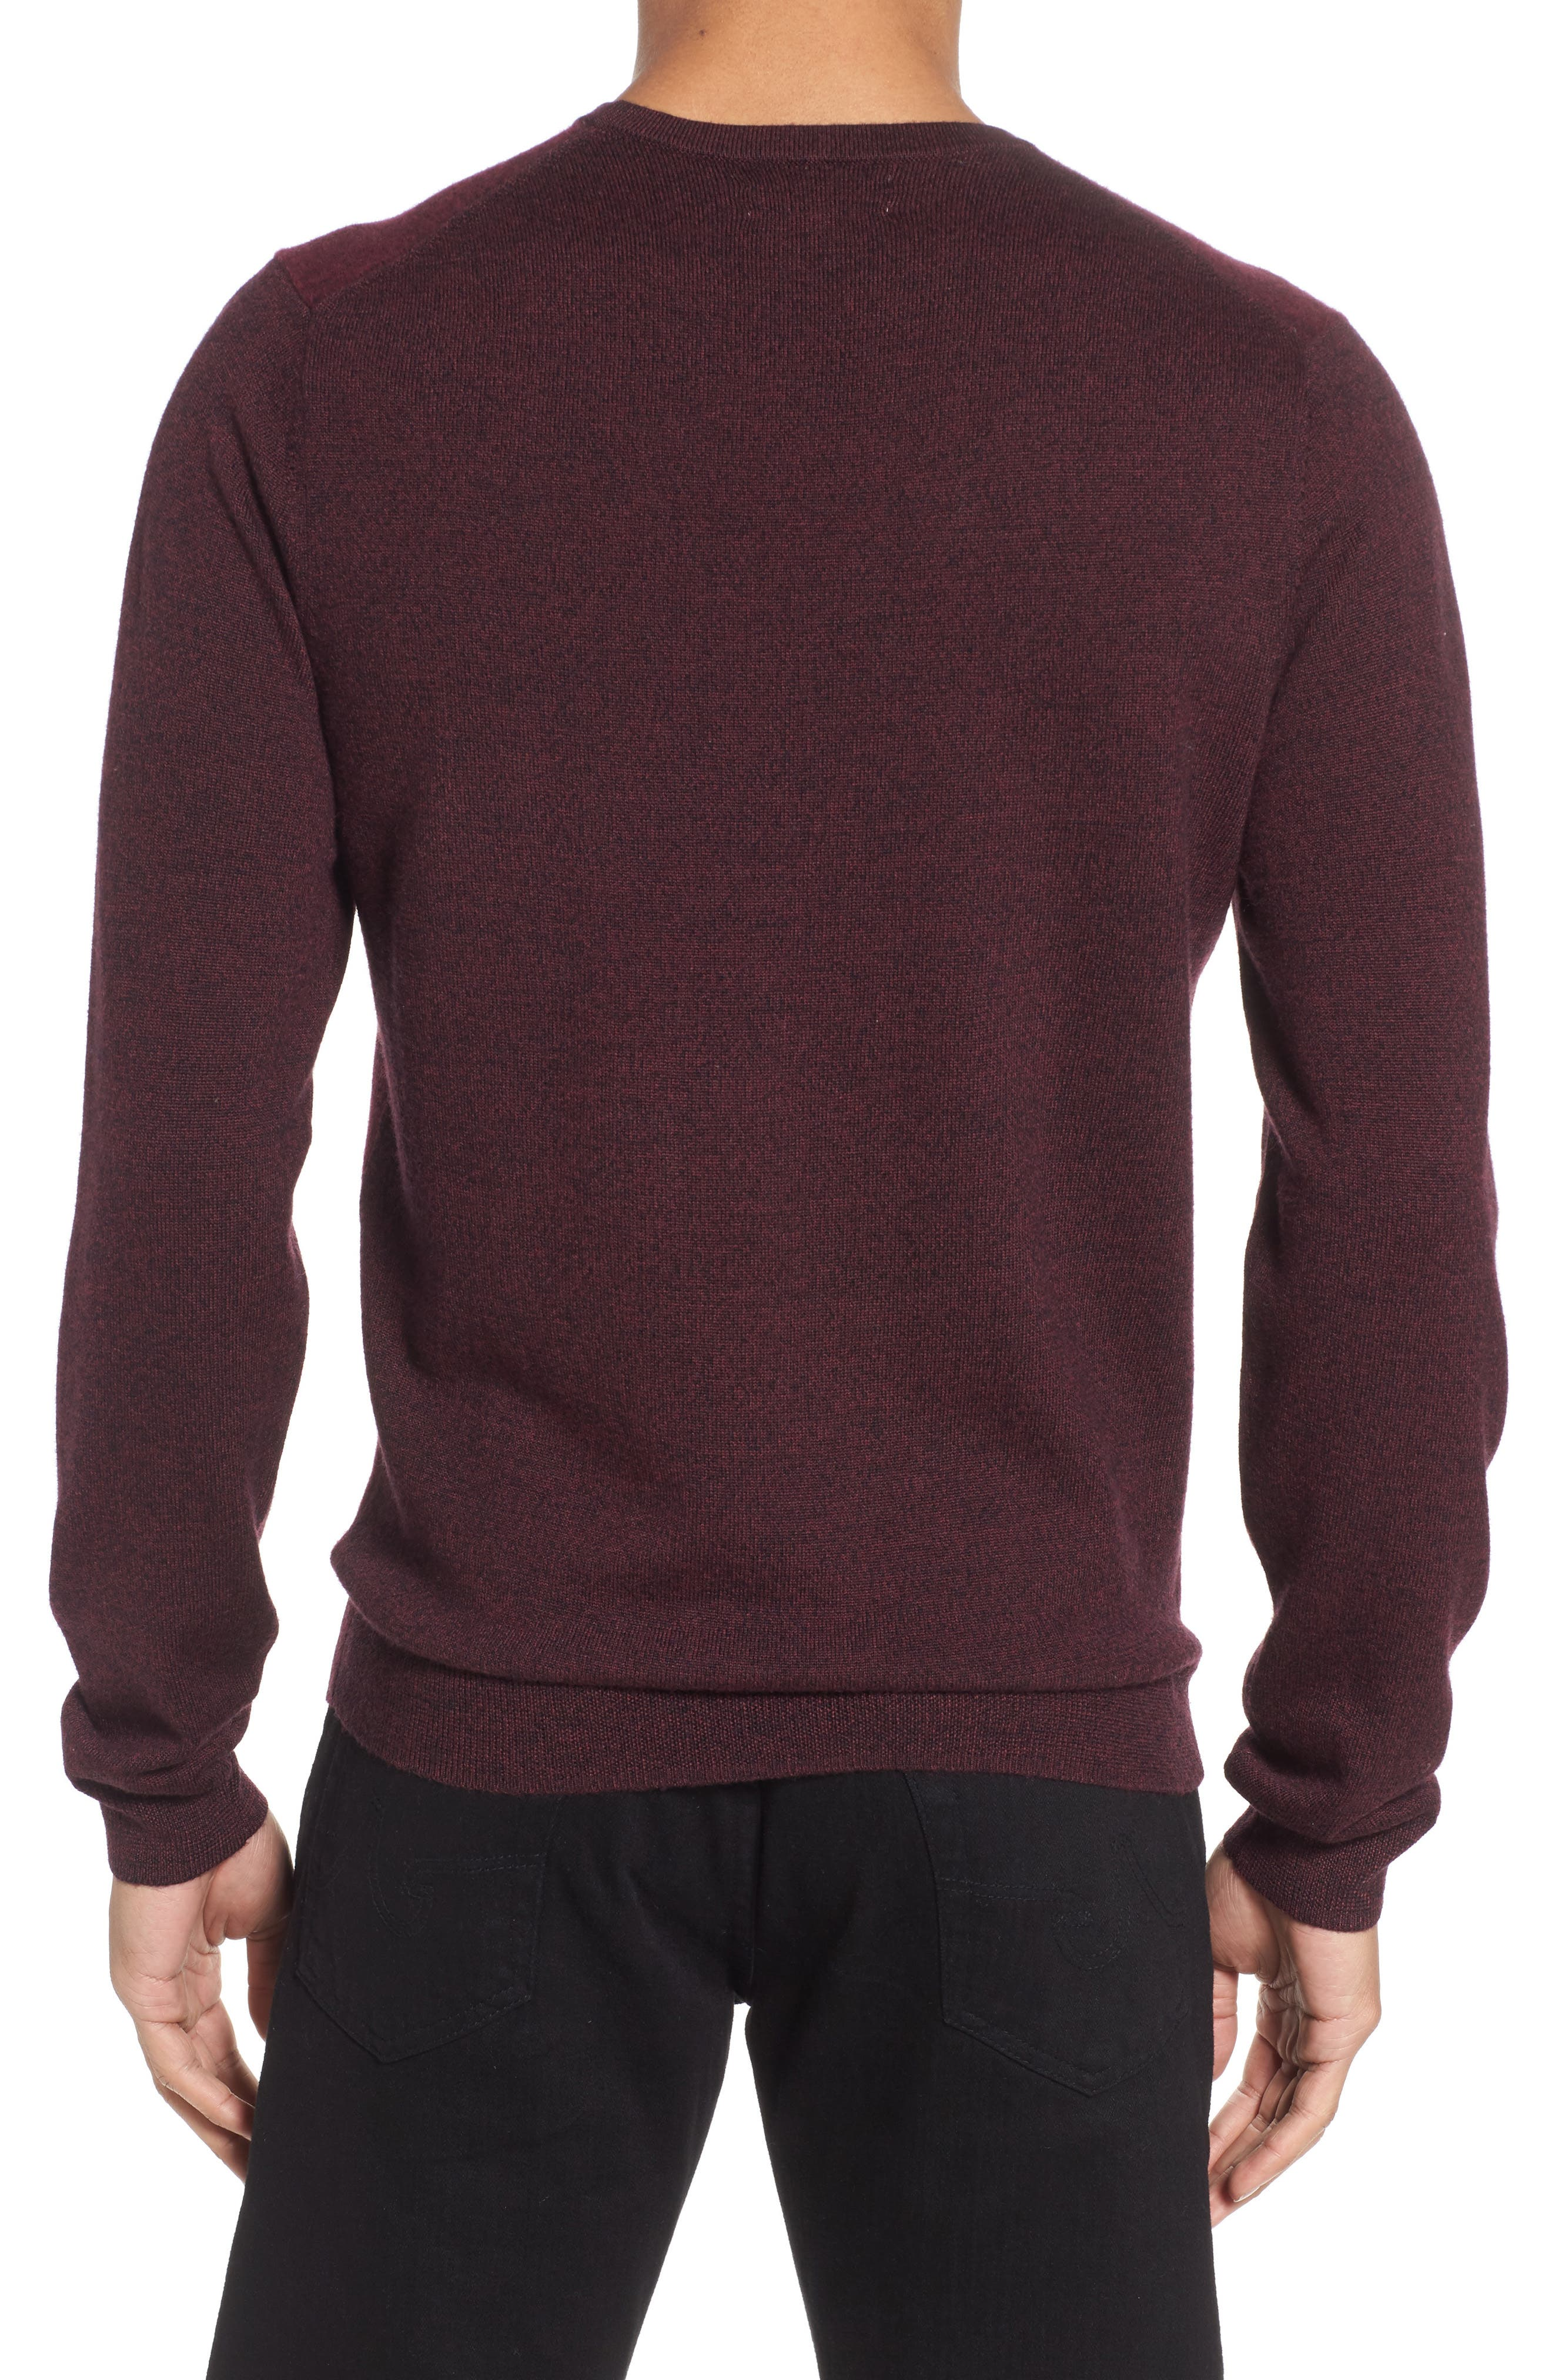 Boiled Wool Blend Crewneck Sweater,                             Alternate thumbnail 2, color,